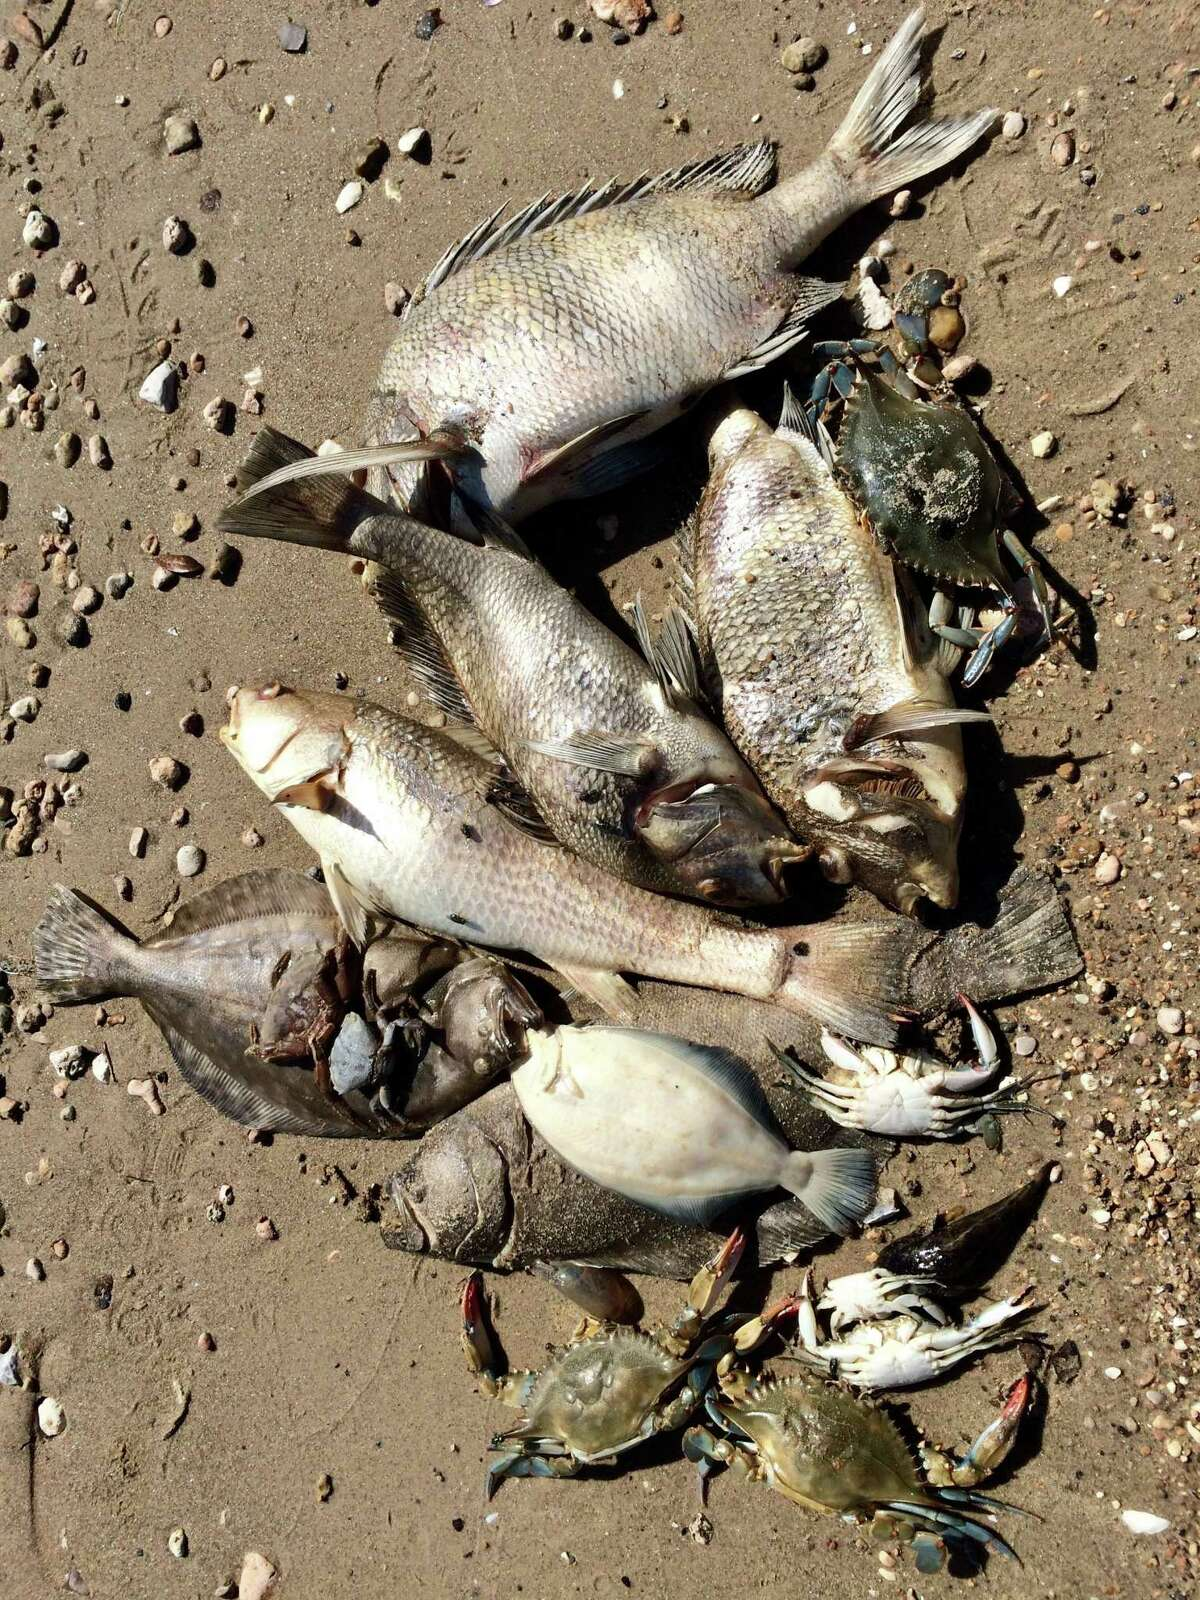 A variety of fish that washed up onto conservation nonprofit Galveston Bay Foundation's property in Kemah, Texas on May 13, 2019. On May 12, roughly 1,000 juvenile fish (1-inch long), approximately 200 blue crab, and a handful of adult flounder, sheepshead, and a variety of drum species washed up onto the property.